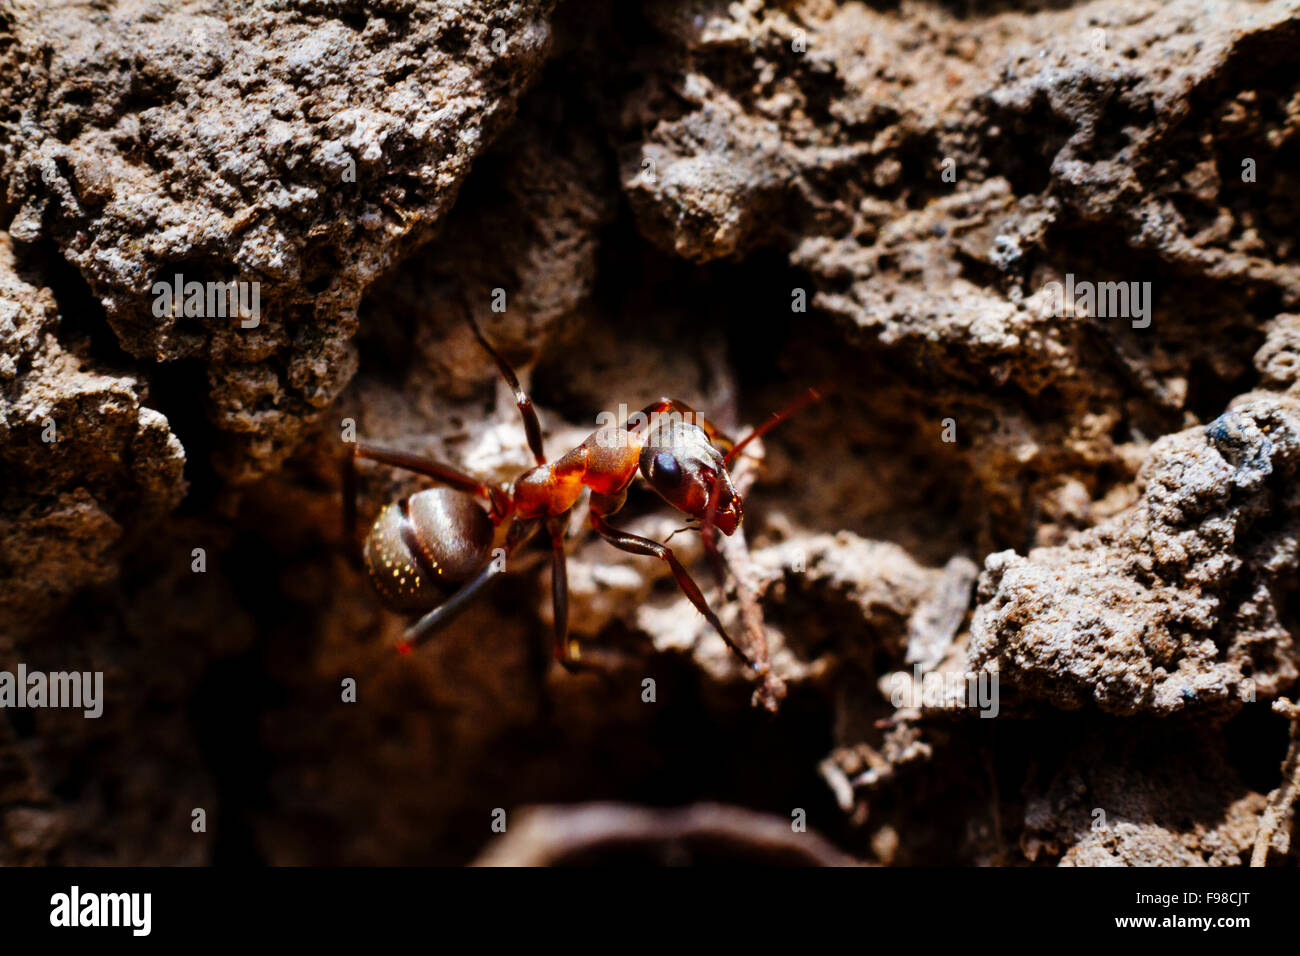 Close up of an ant on the ground. - Stock Image